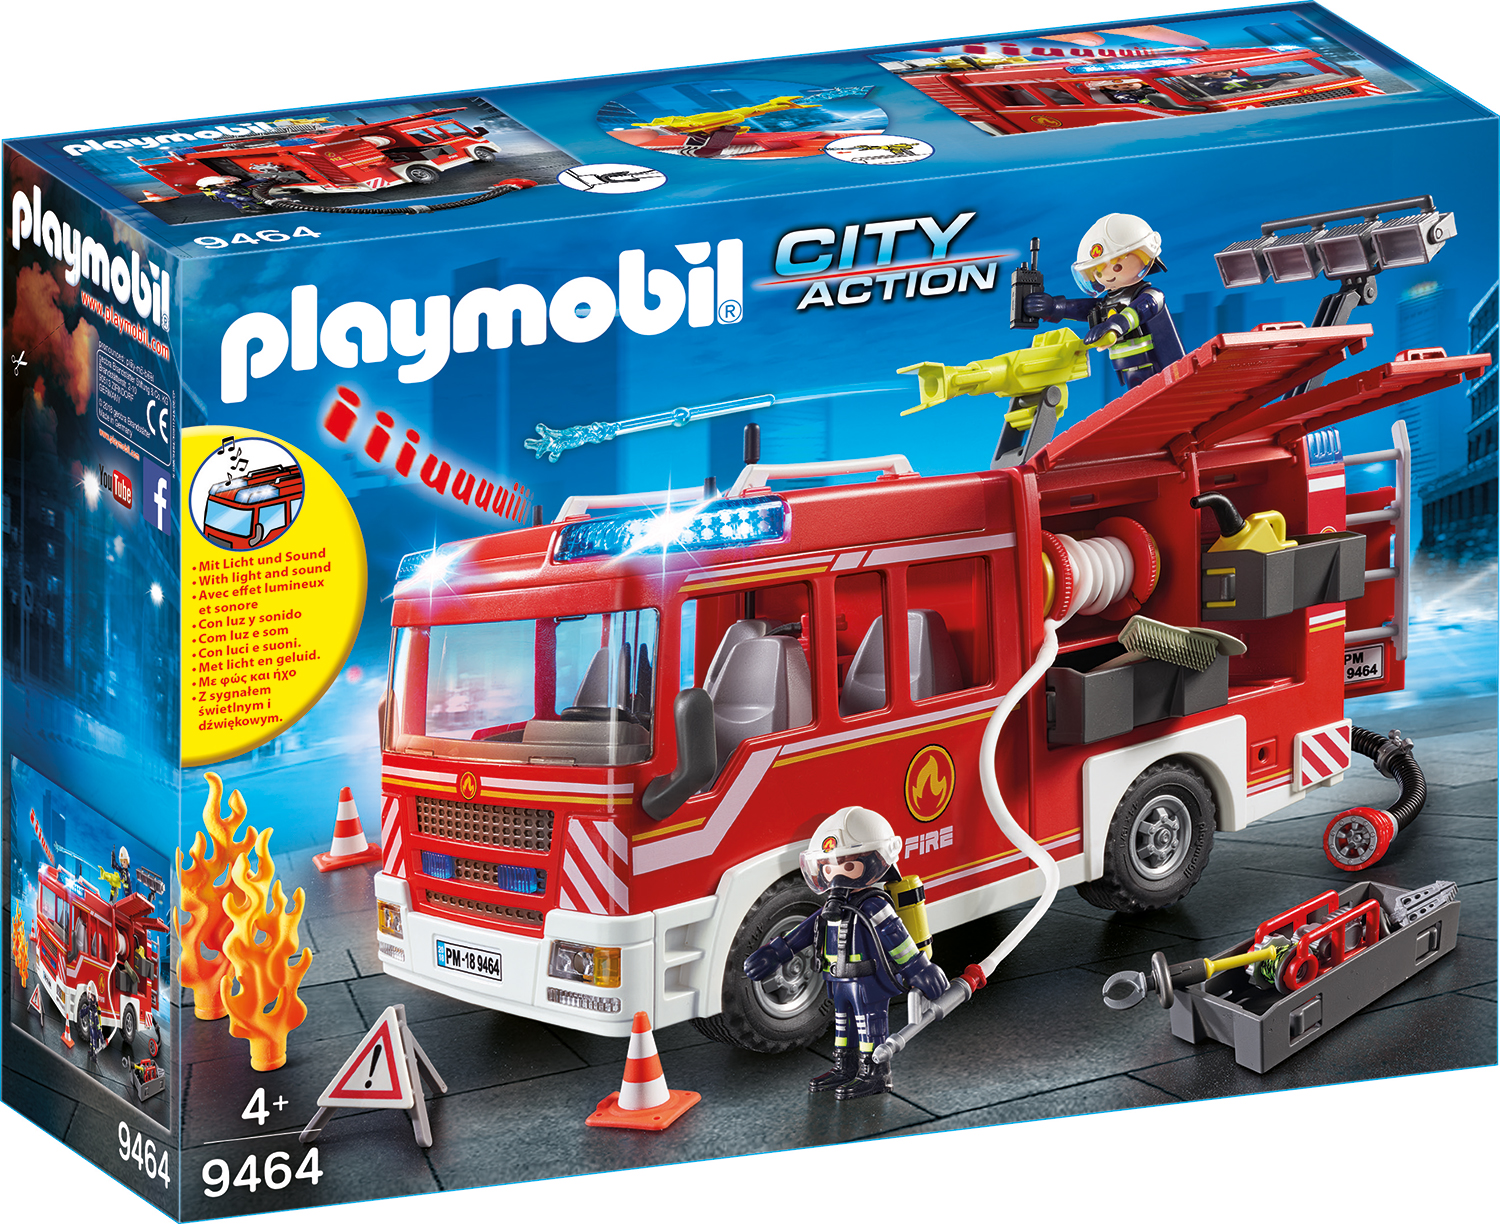 Masina de pompieri playmobil city action